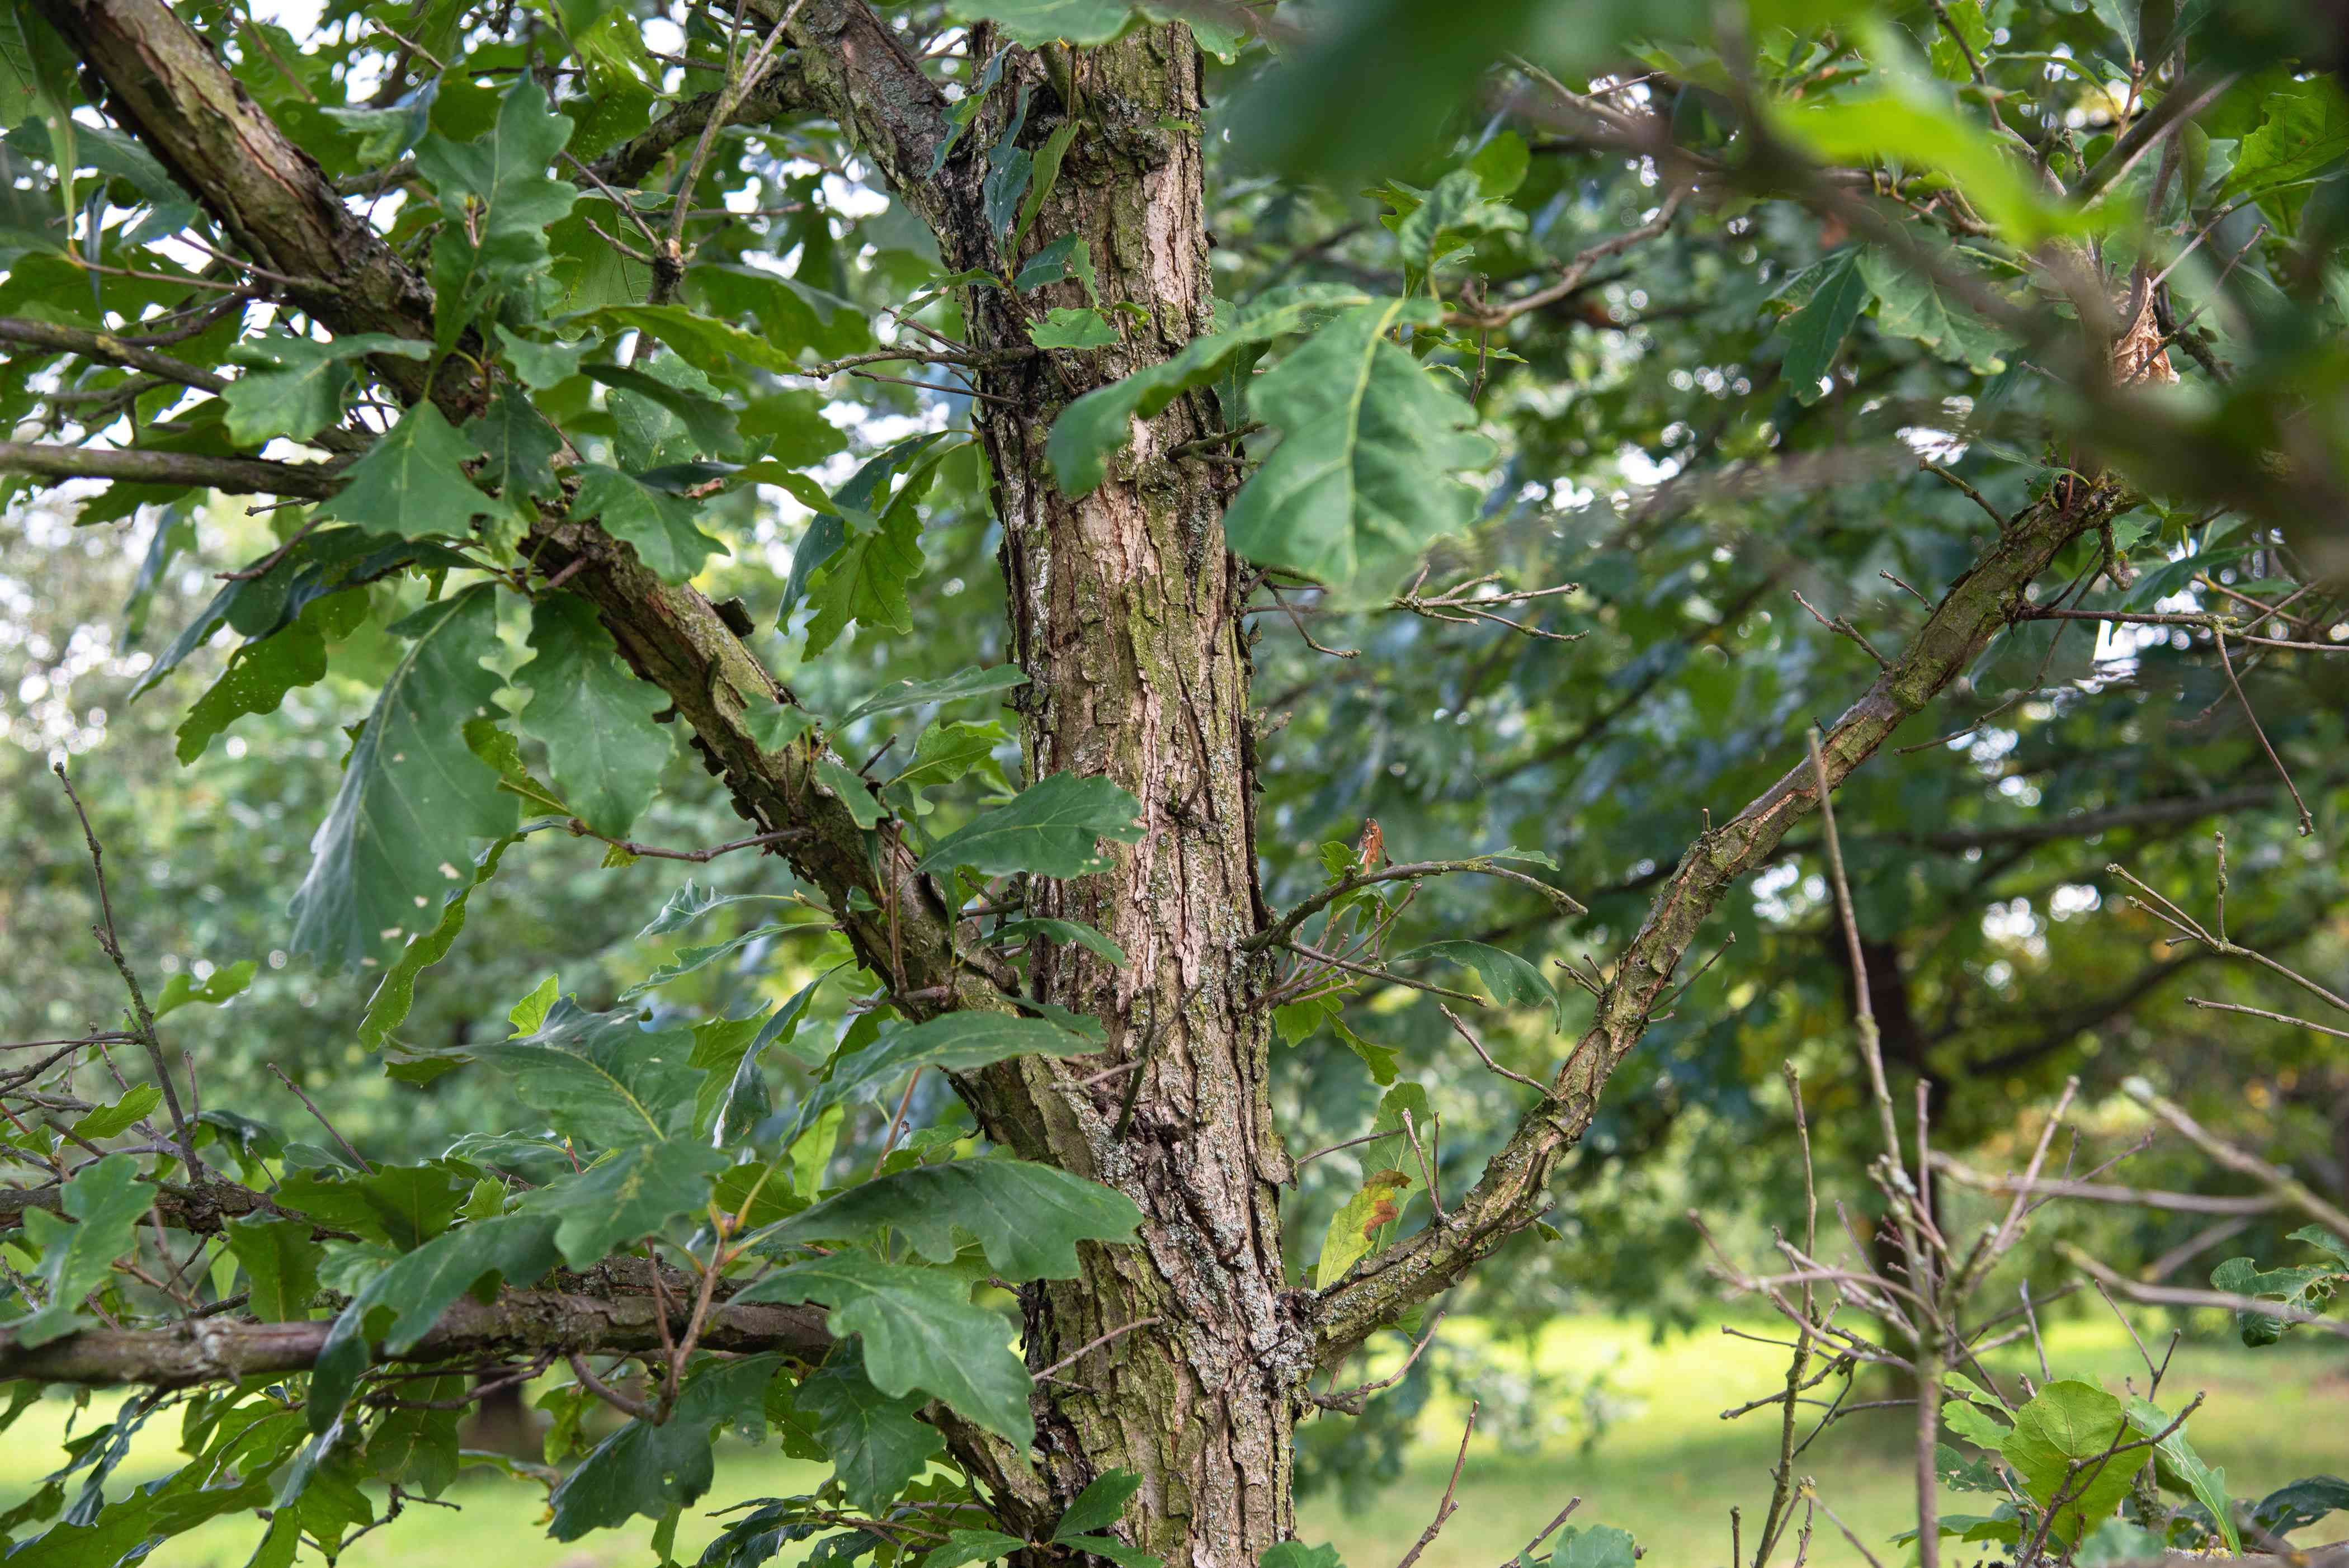 Swamp white oak tree trunk with peeling bark and branches covered with leaves